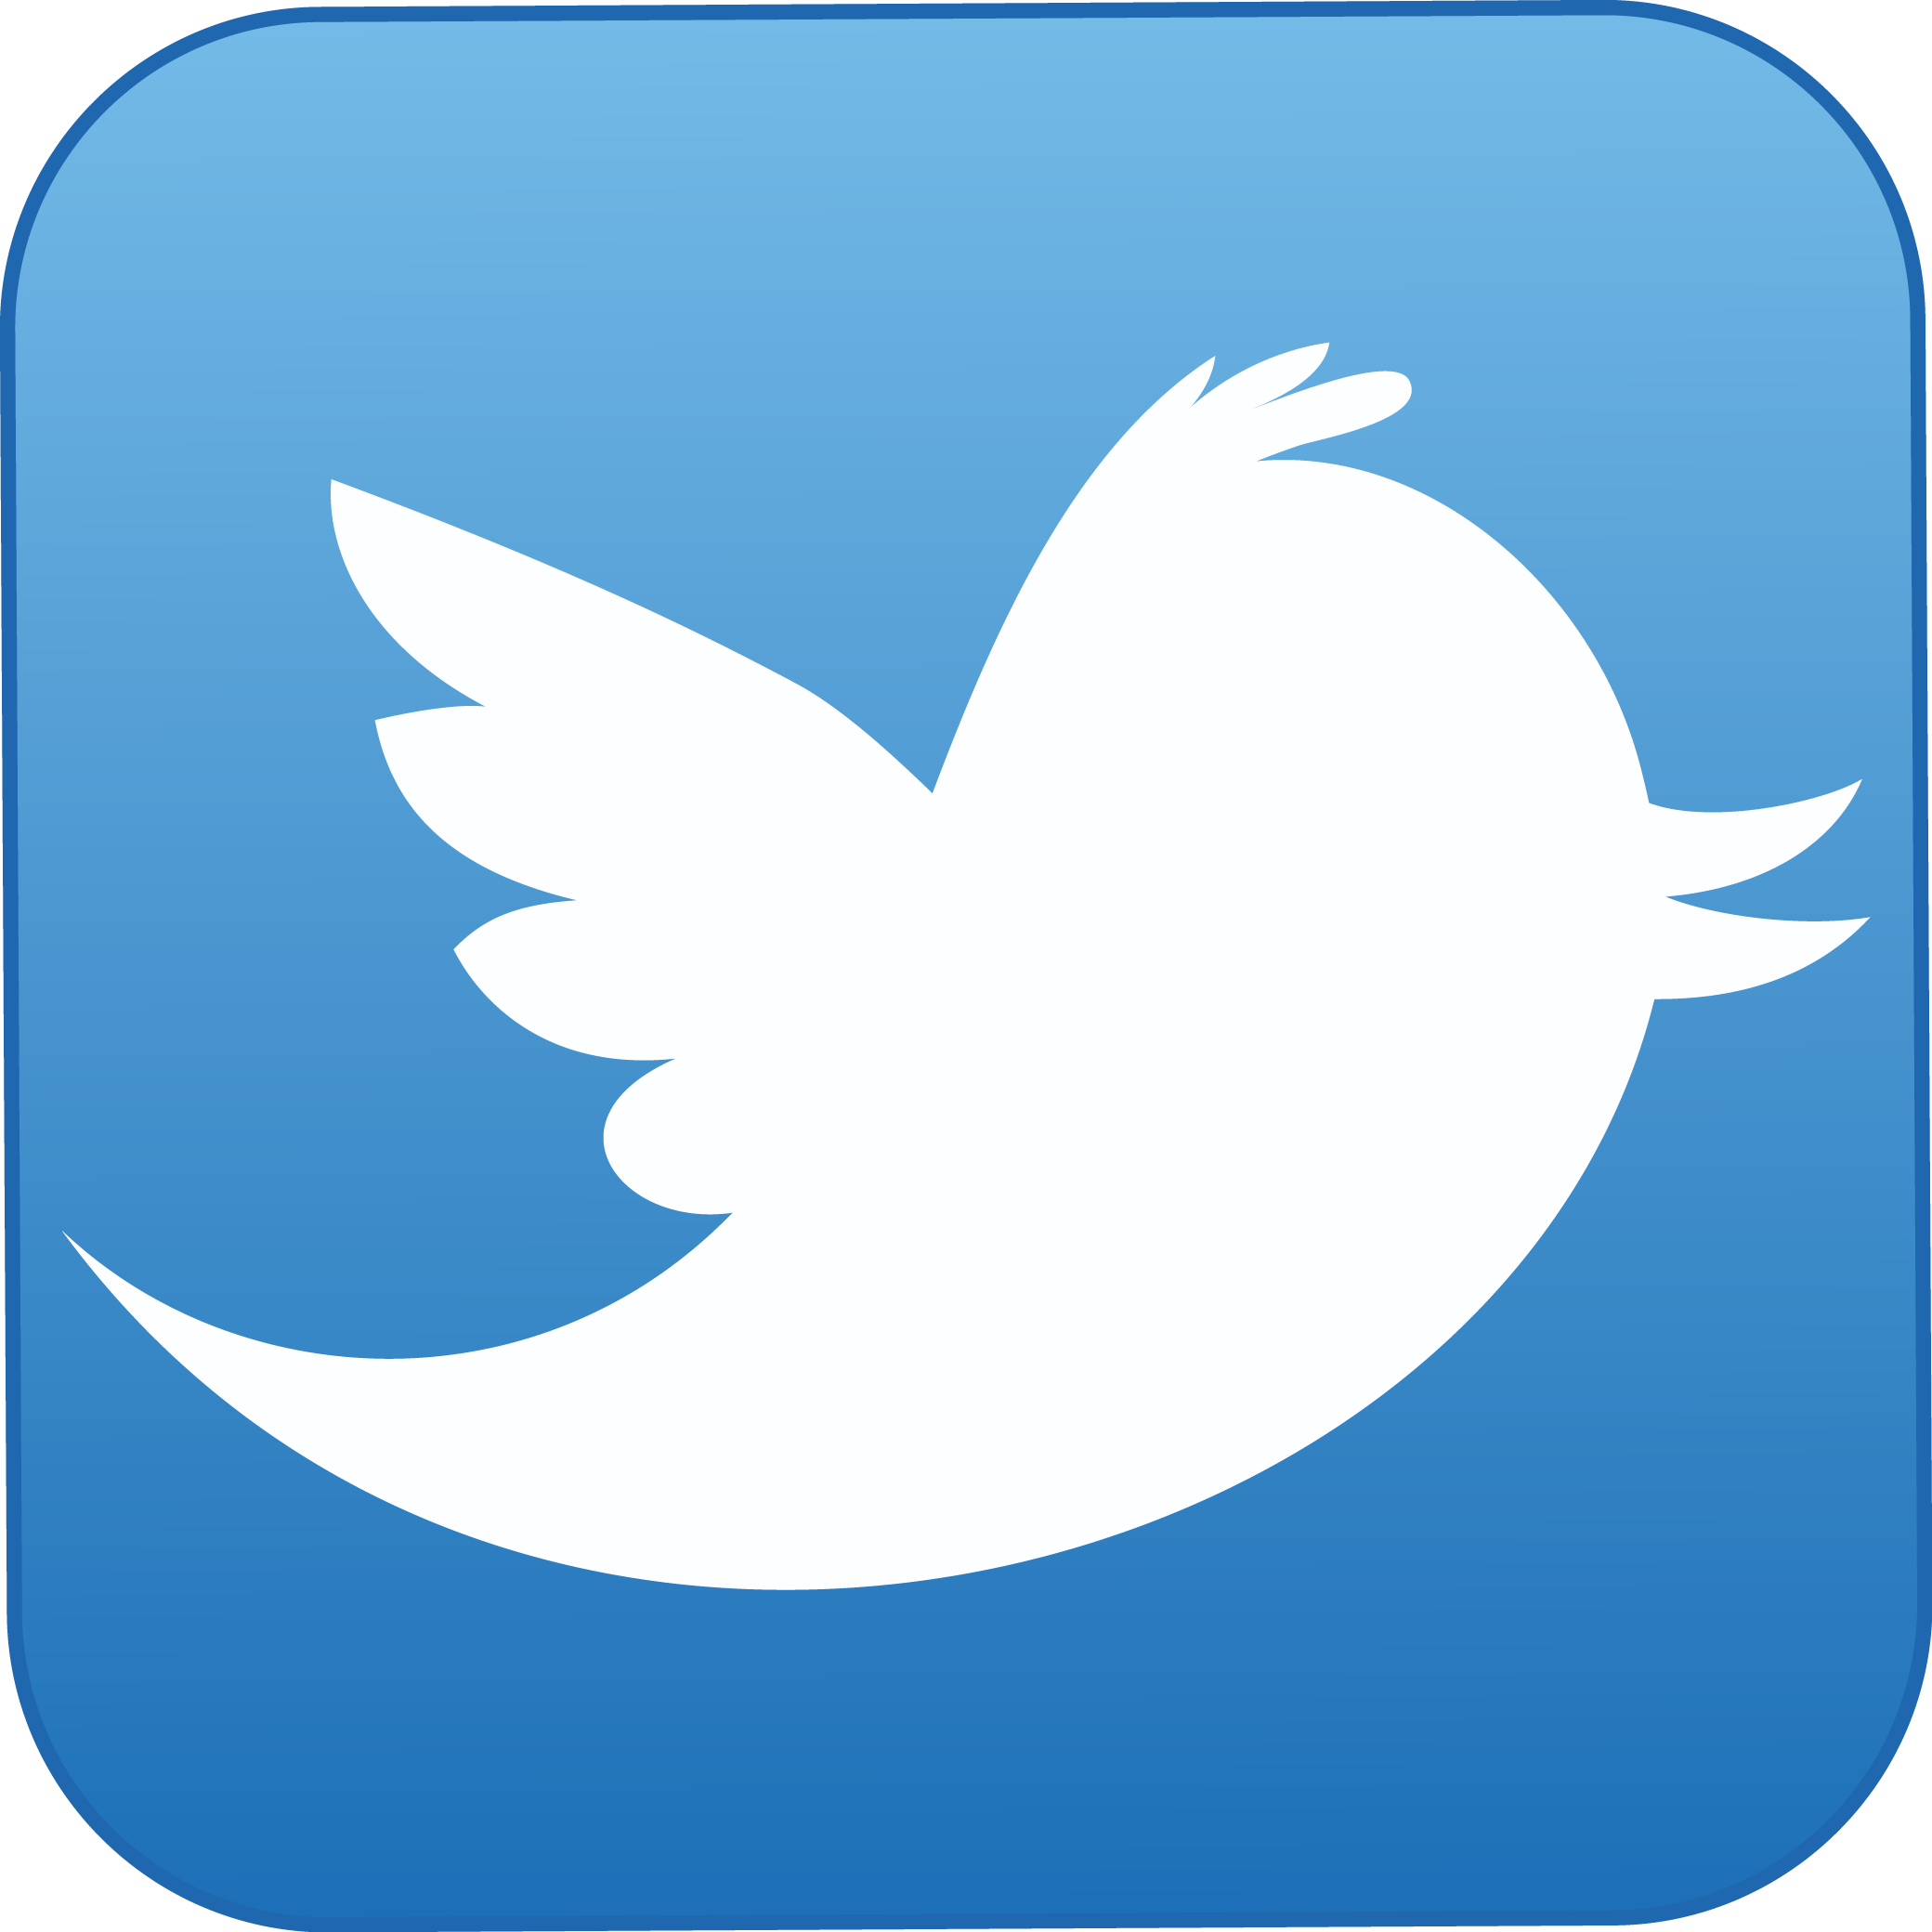 MILLS, CATHEY: twitter_logo.png